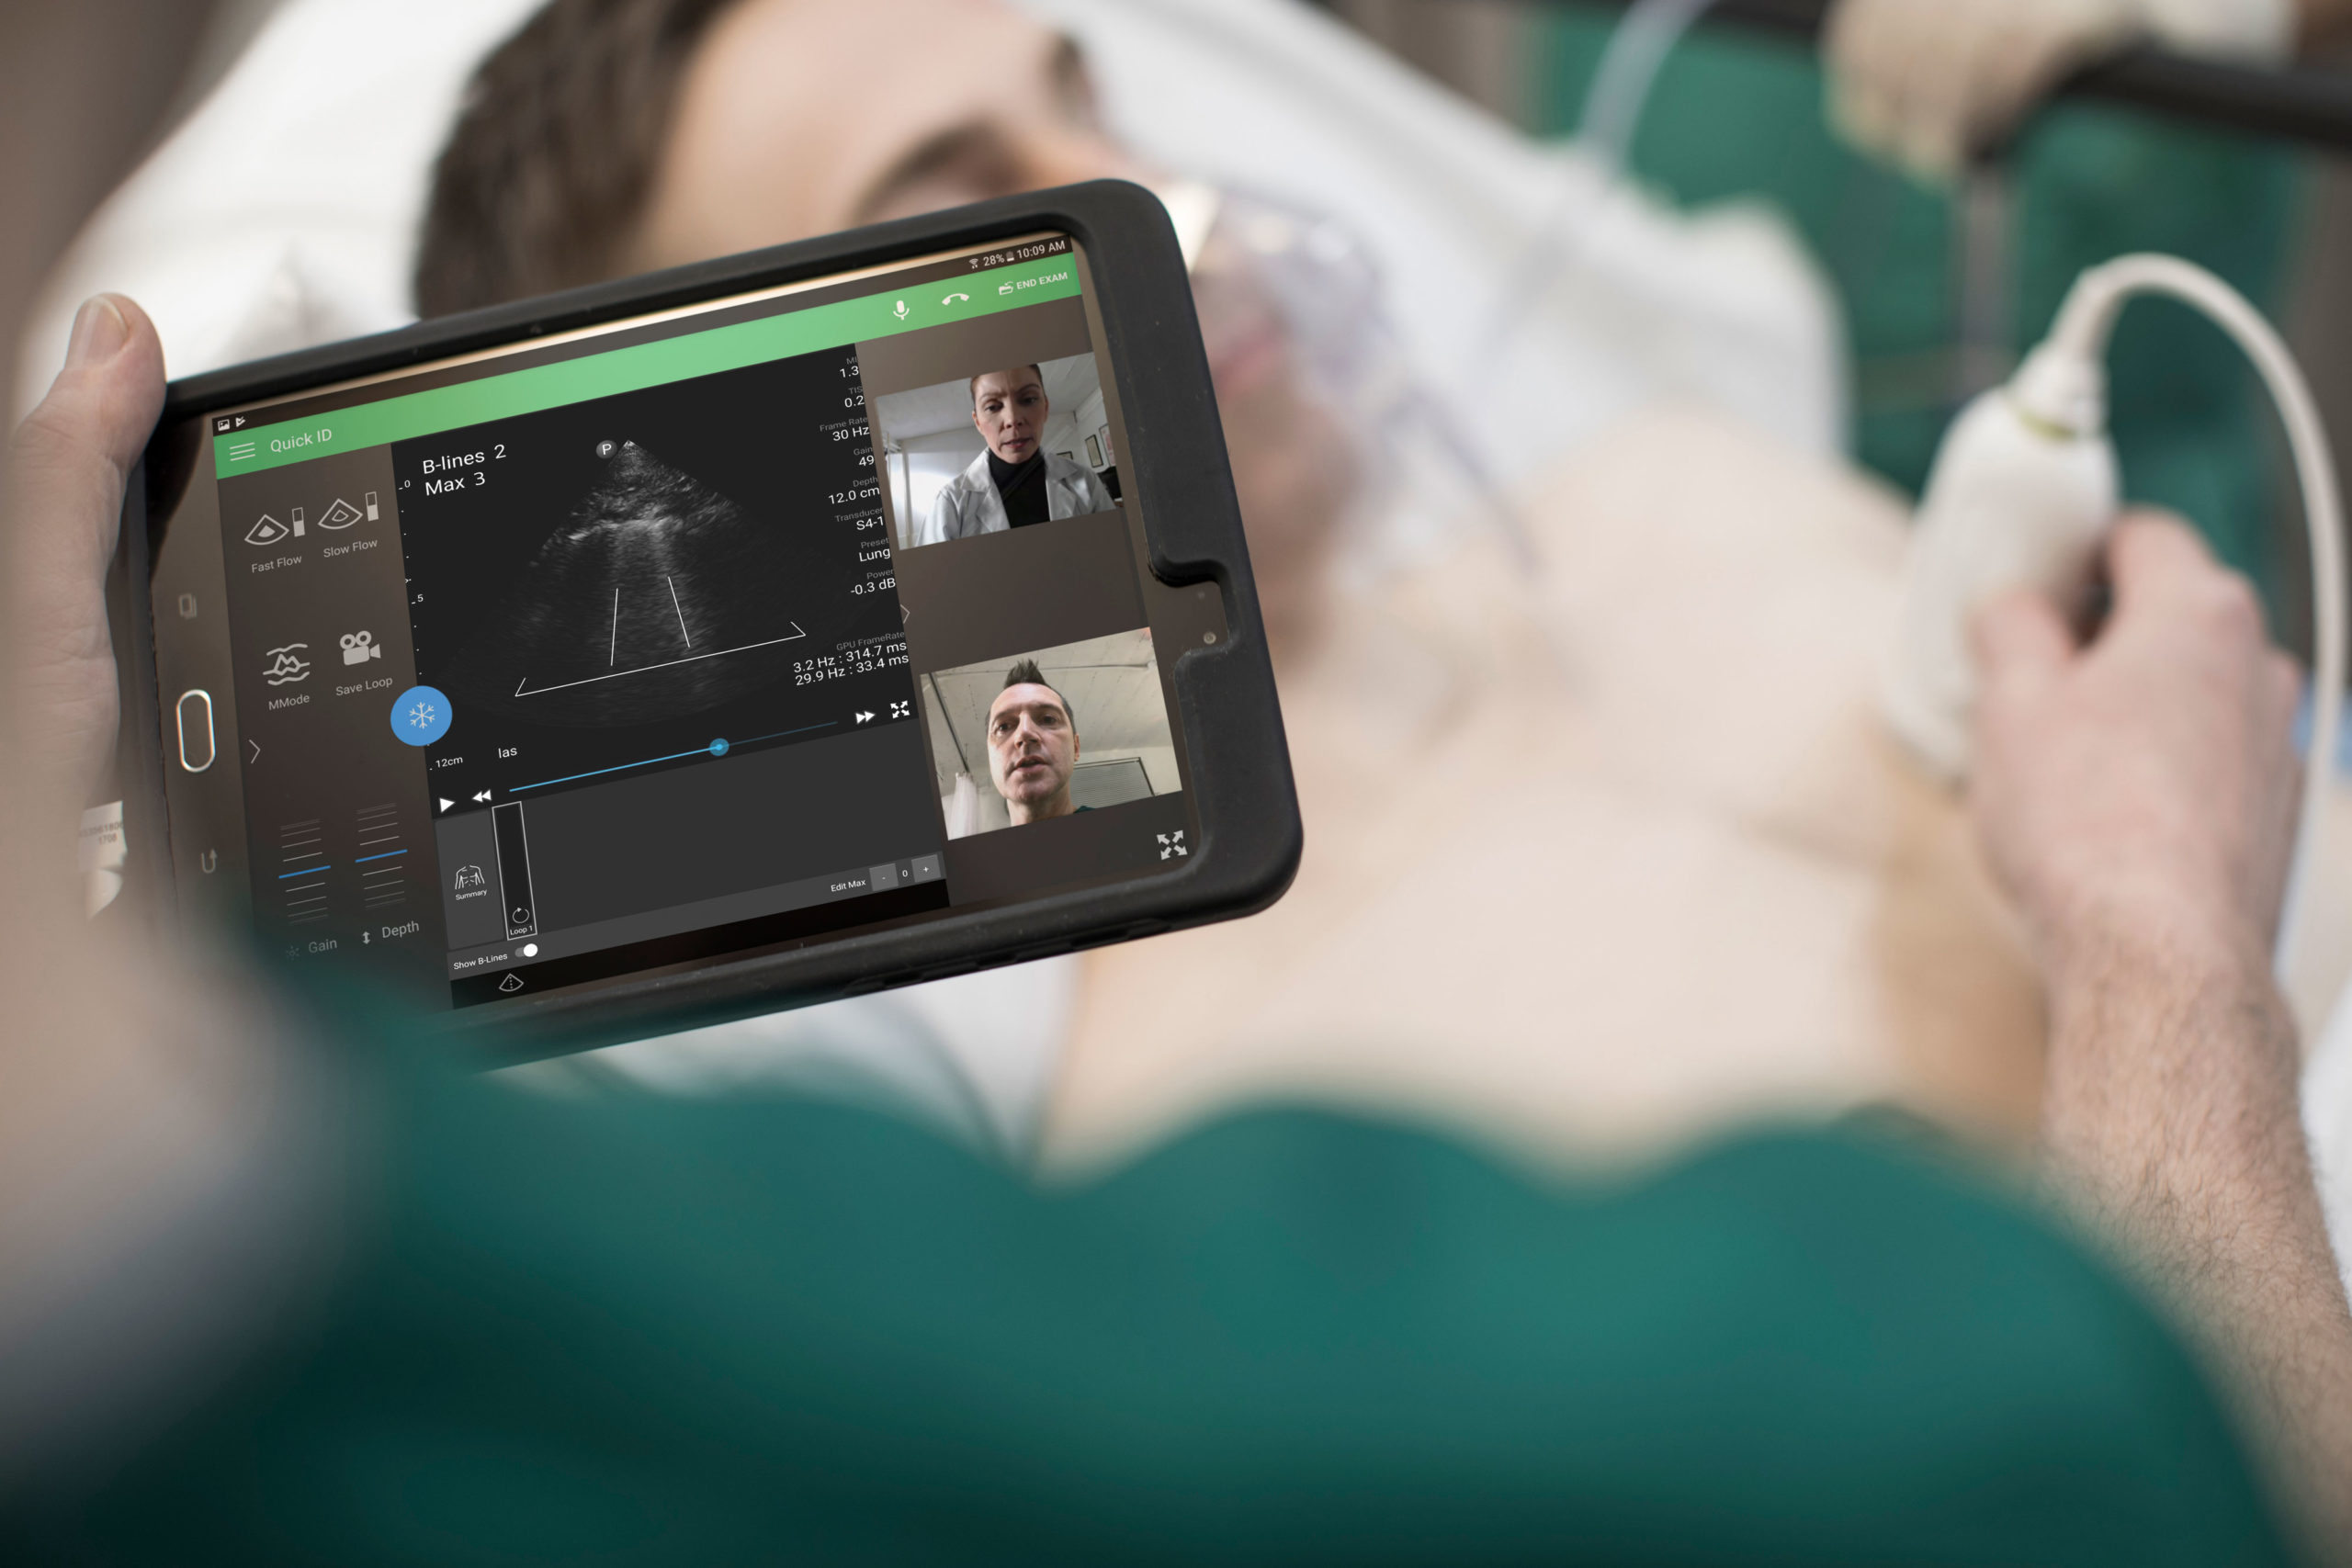 Philips Lumify with Reacts handheld tele-ultrasound solution